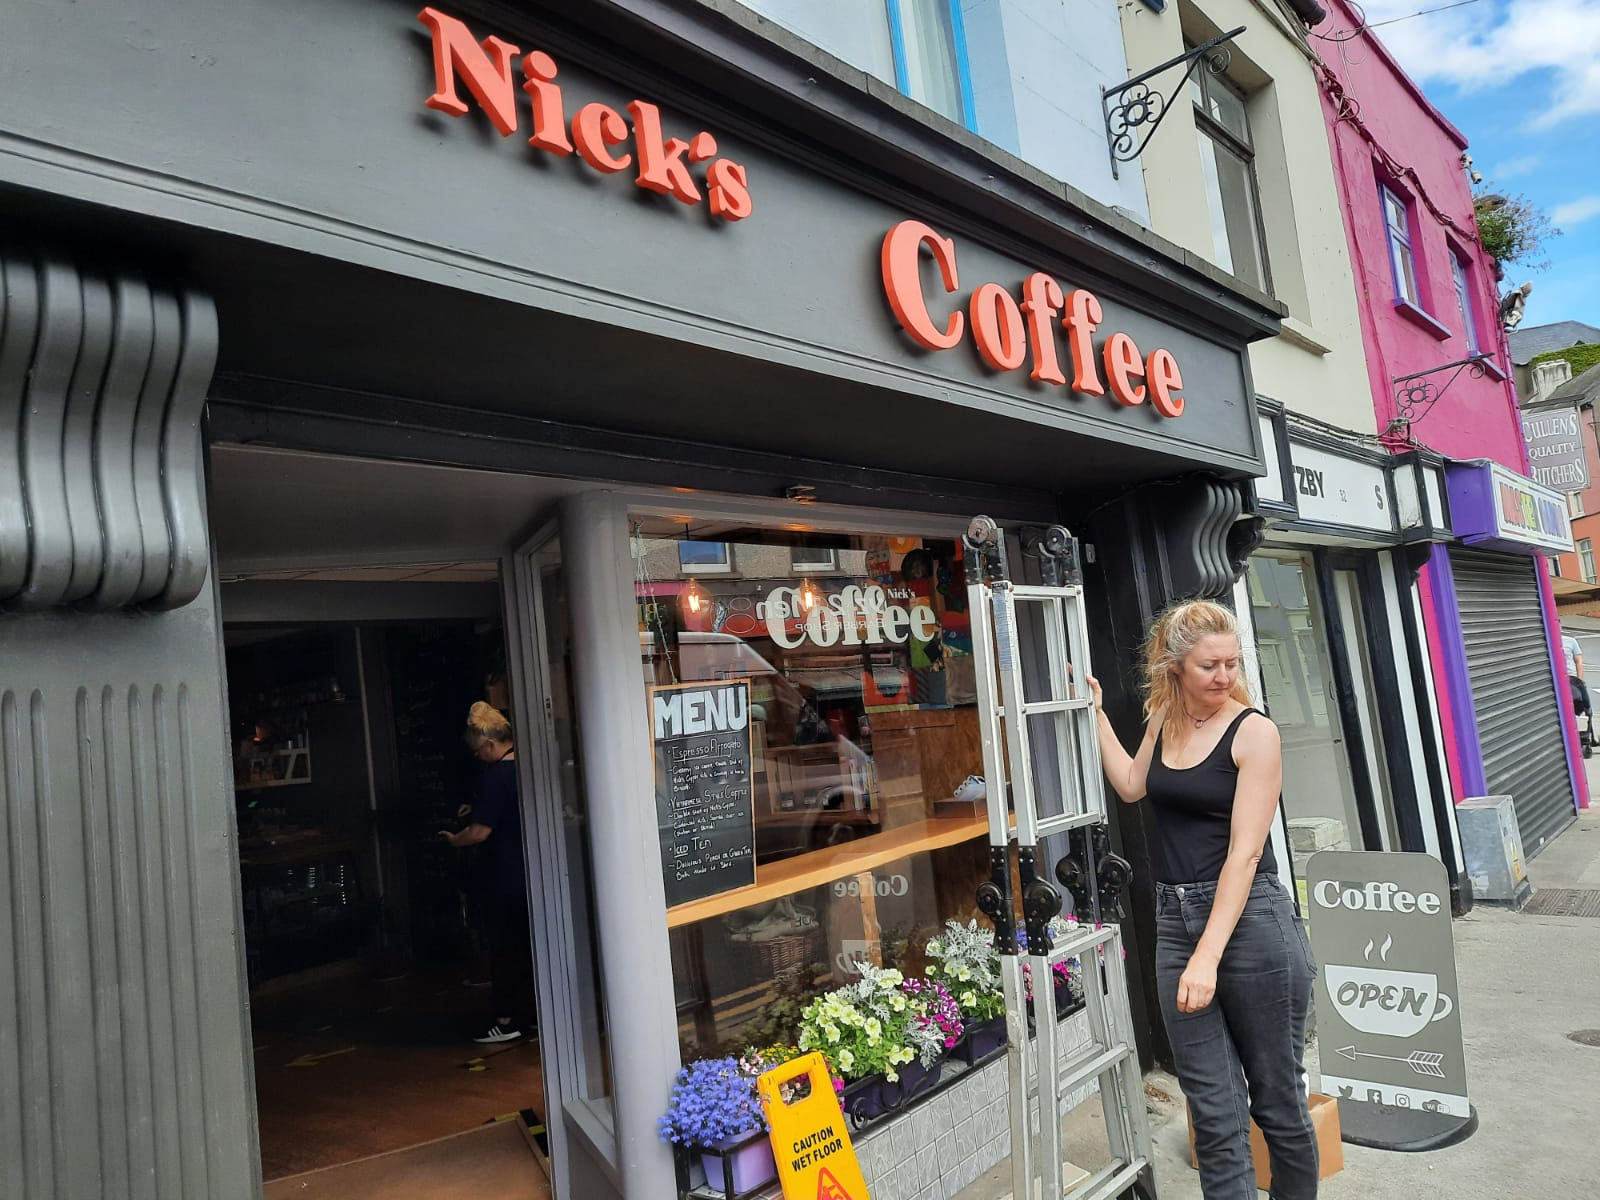 Nick's Coffee Shop will host Ballynerrin Eggs as part of Wicklow Naturally's October Feast IMG-20200924-WA0023